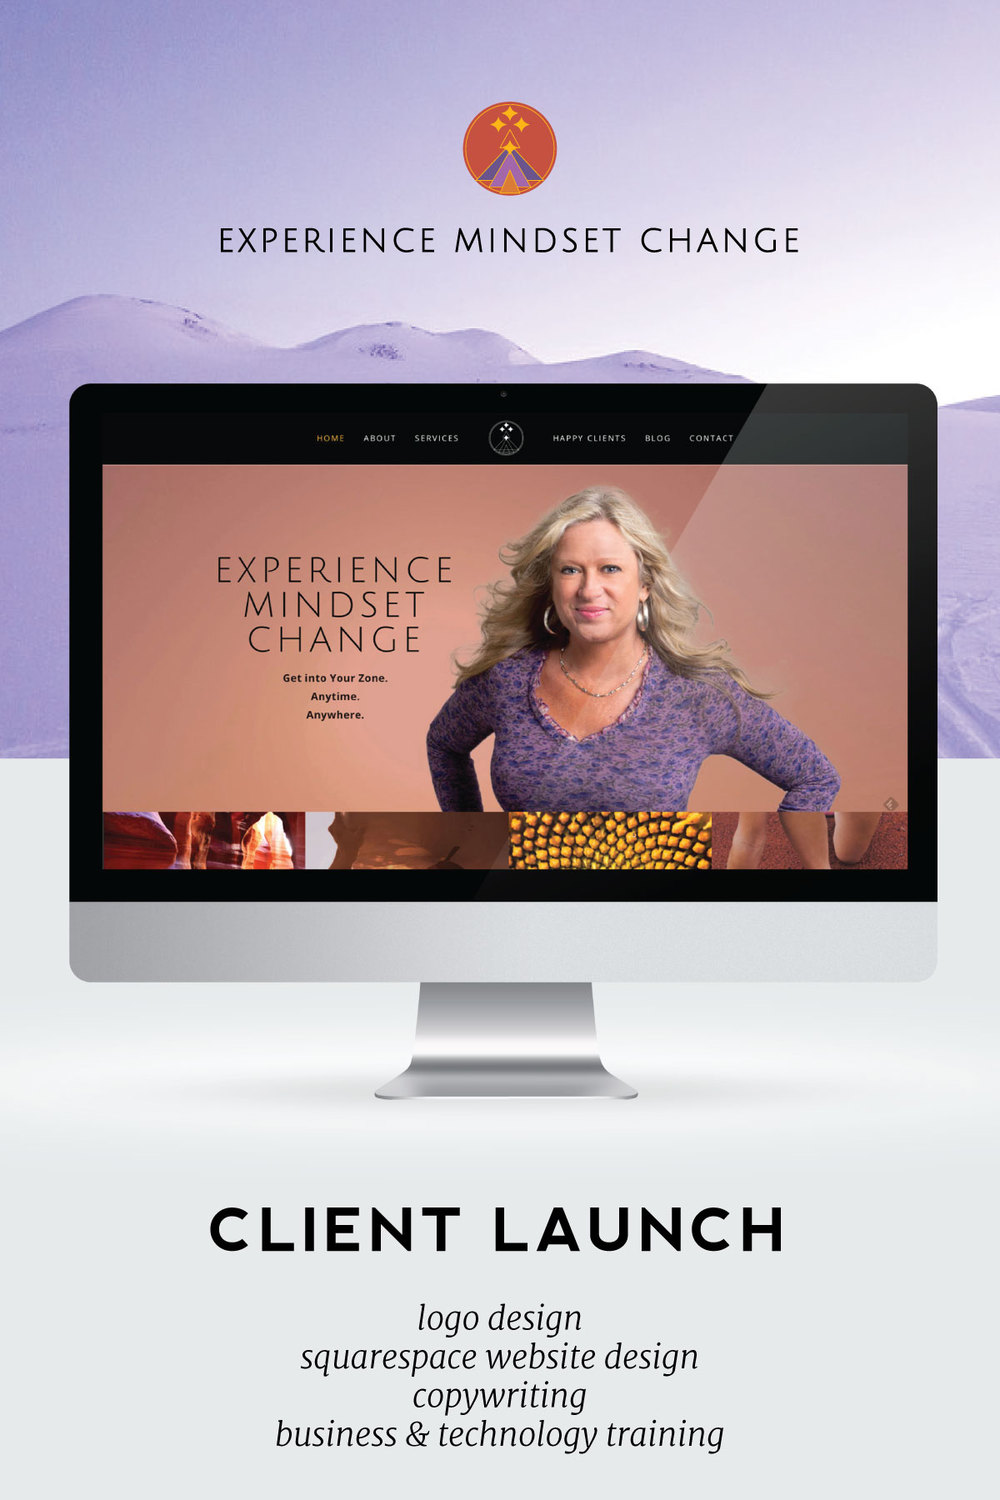 Squarespace client launch story for Donnamarie Jurick of Experience Mindset Change.